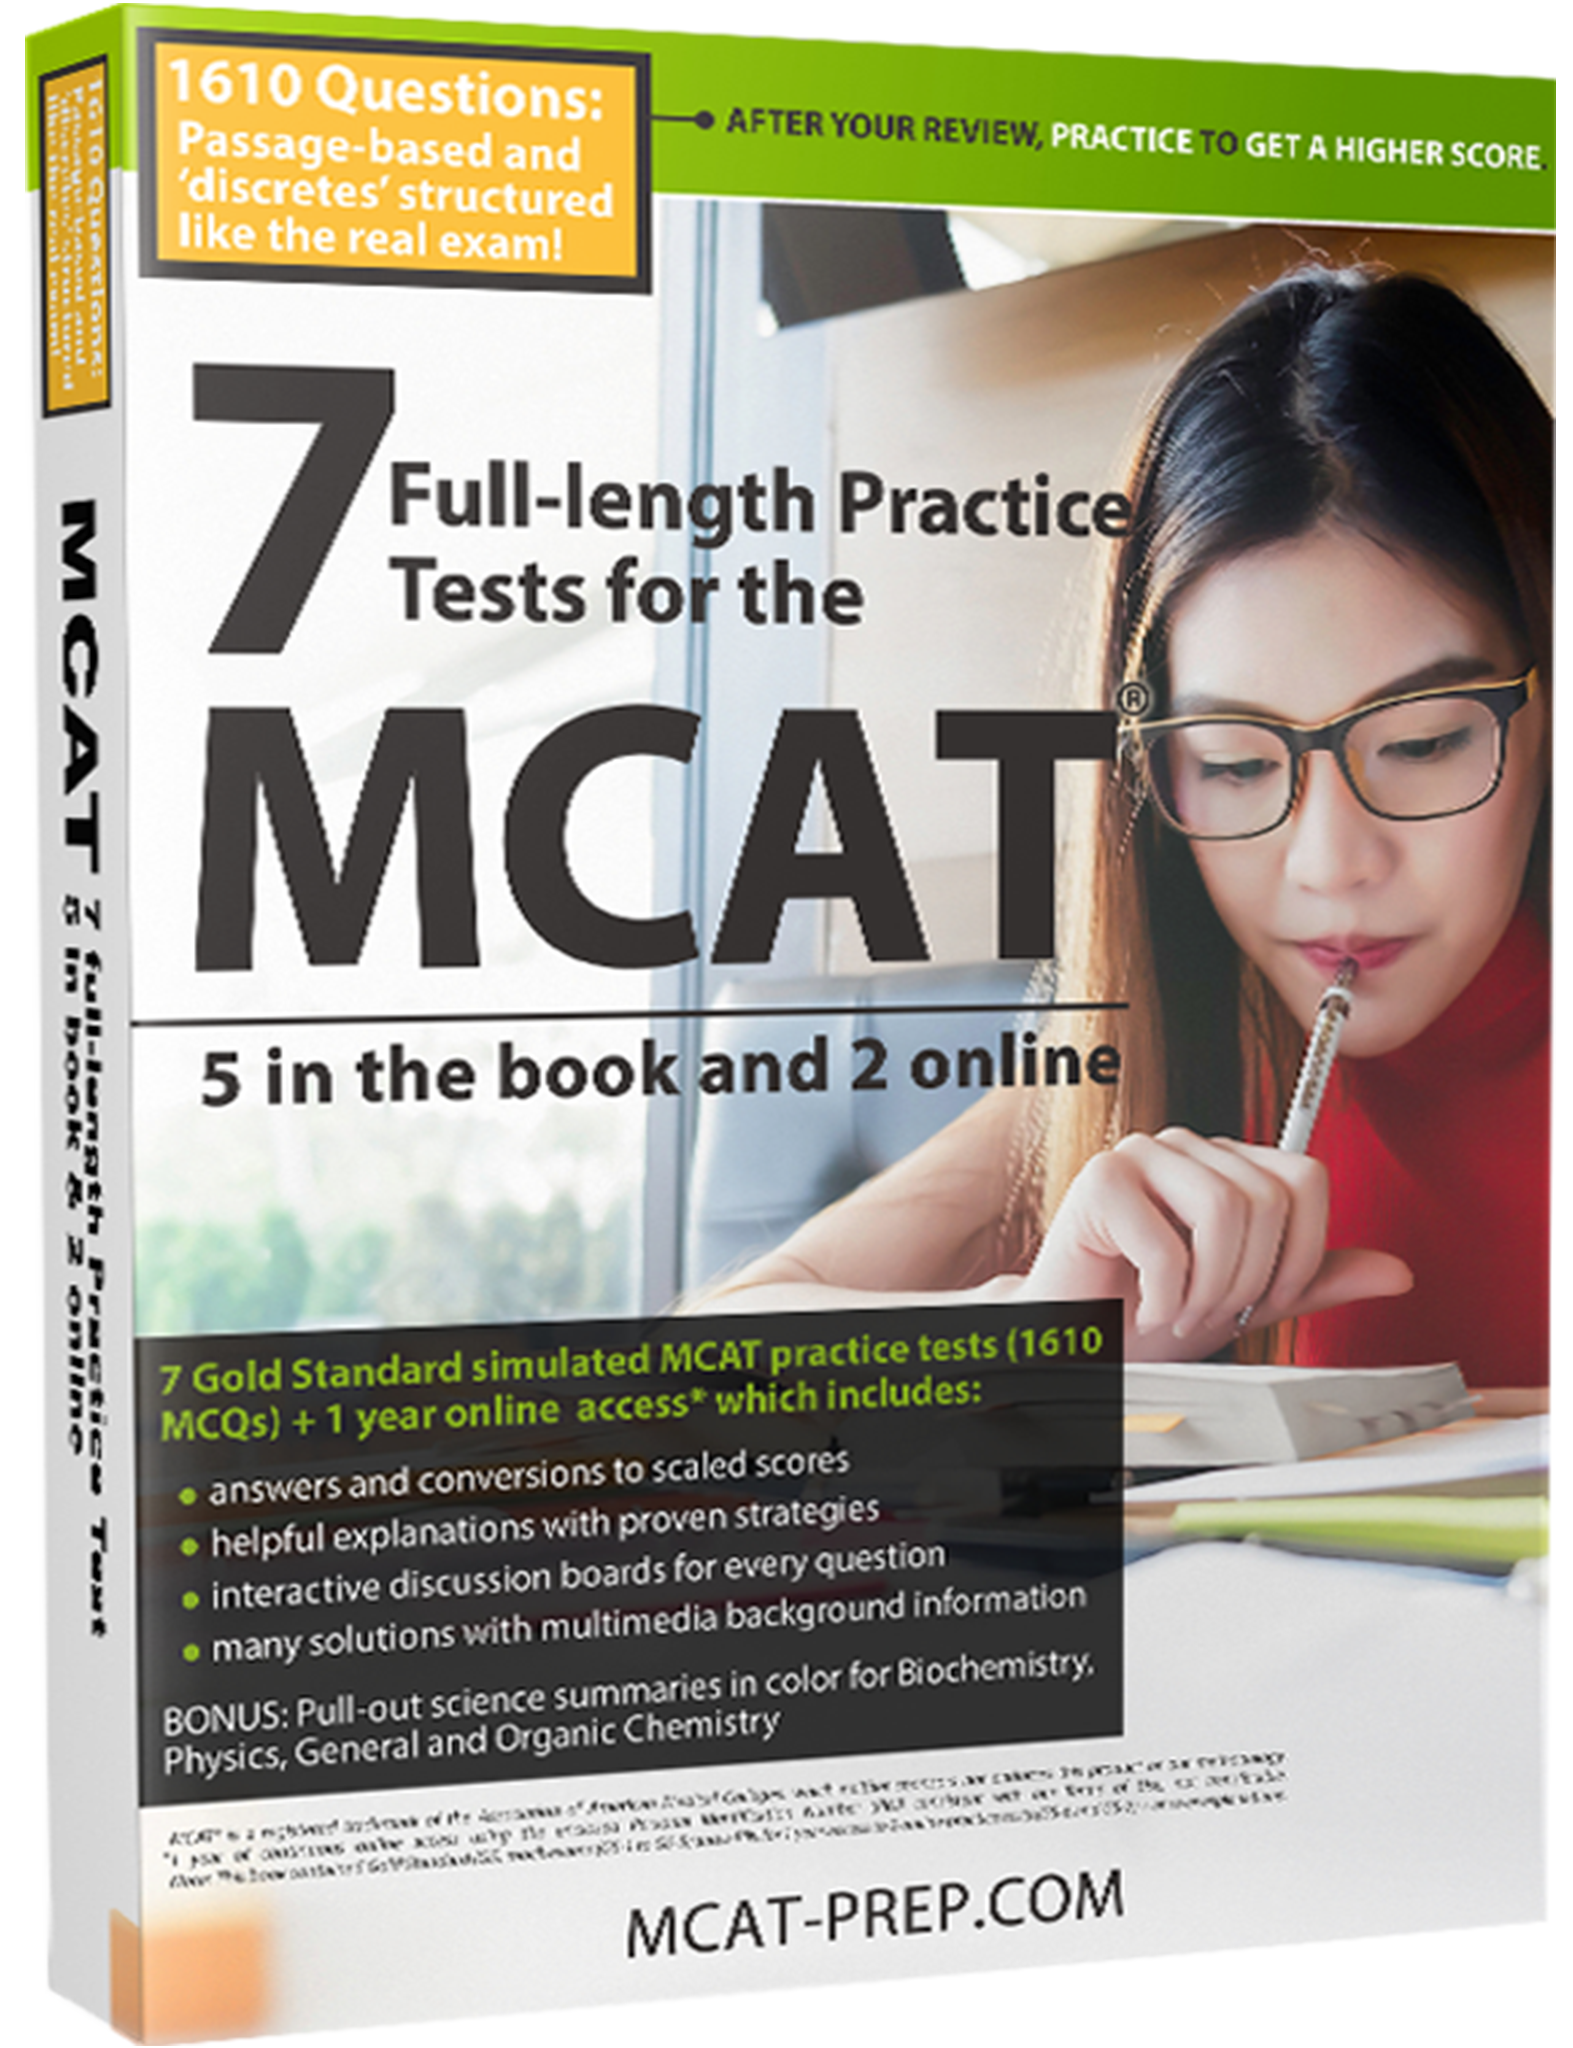 MCAT Physics Equations Sheet| Gold Standard MCAT Prep